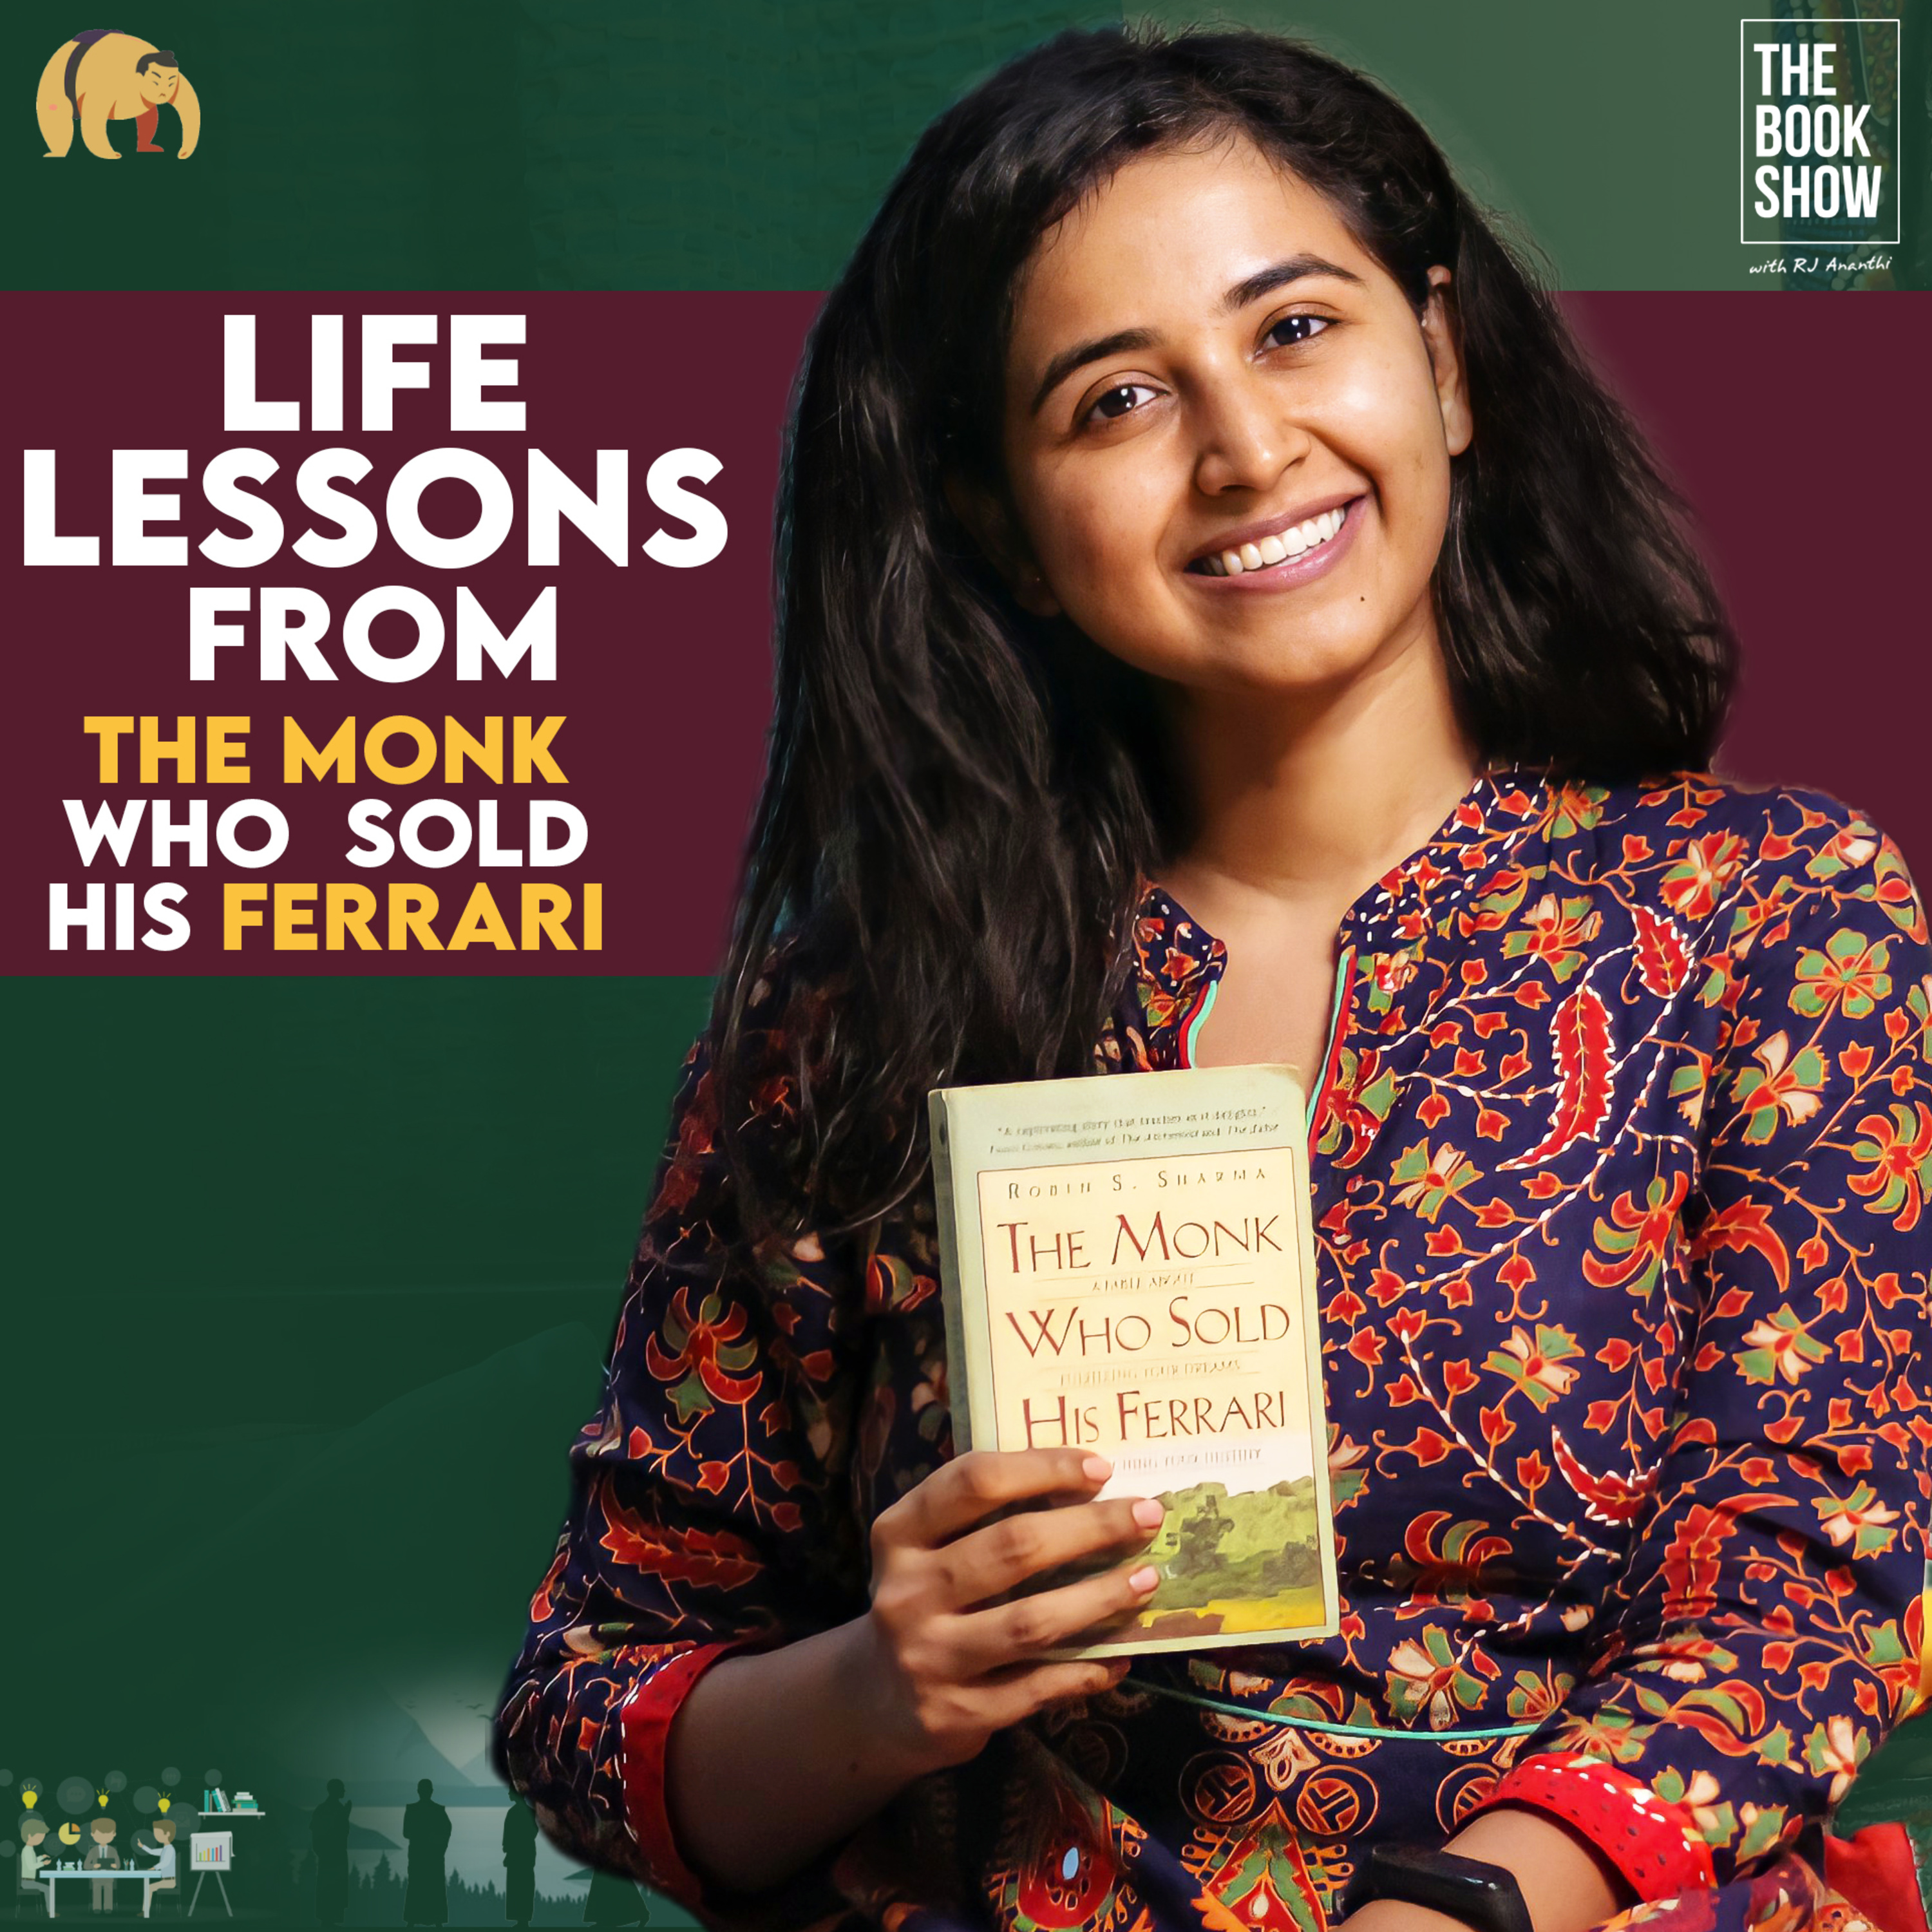 Life lessons from The Monk who sold his Ferrari   Book review   The Book show ft. RJ Ananthi